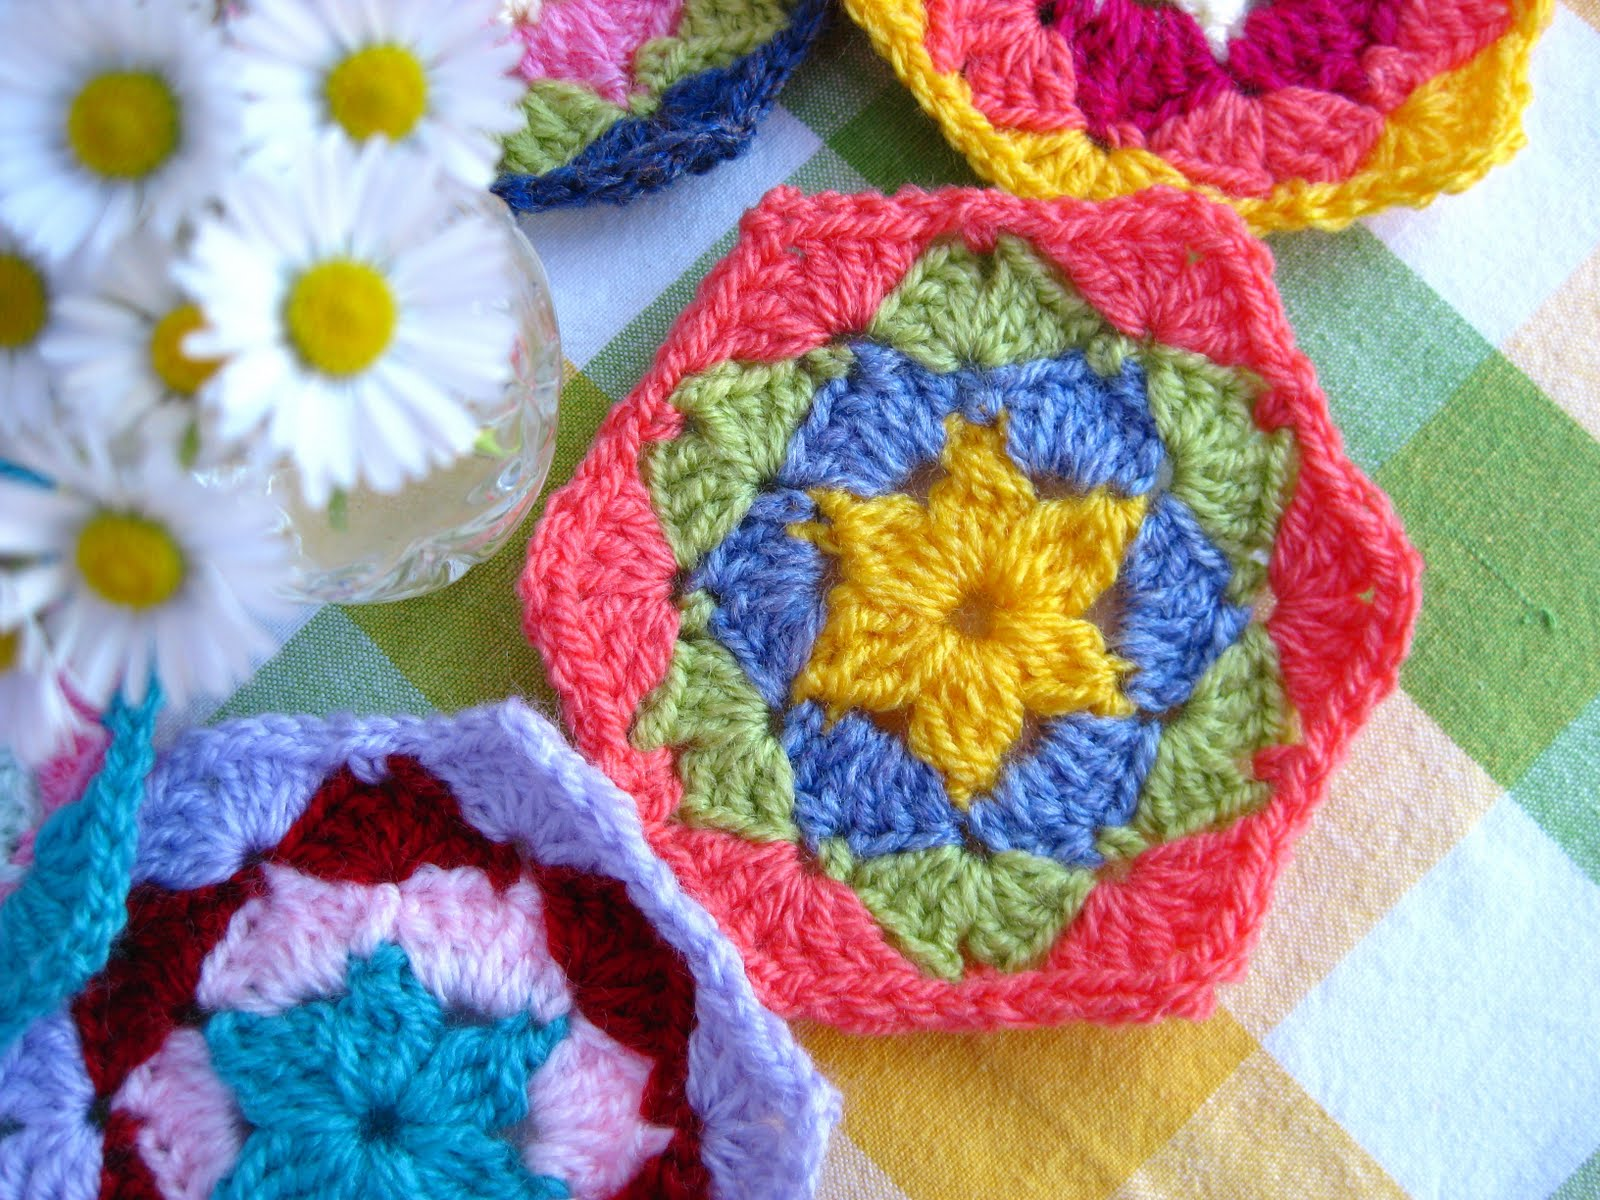 Crocheting Hexagons : Bunny Mummy: Crochet Hexagon Tutorial..... Part One